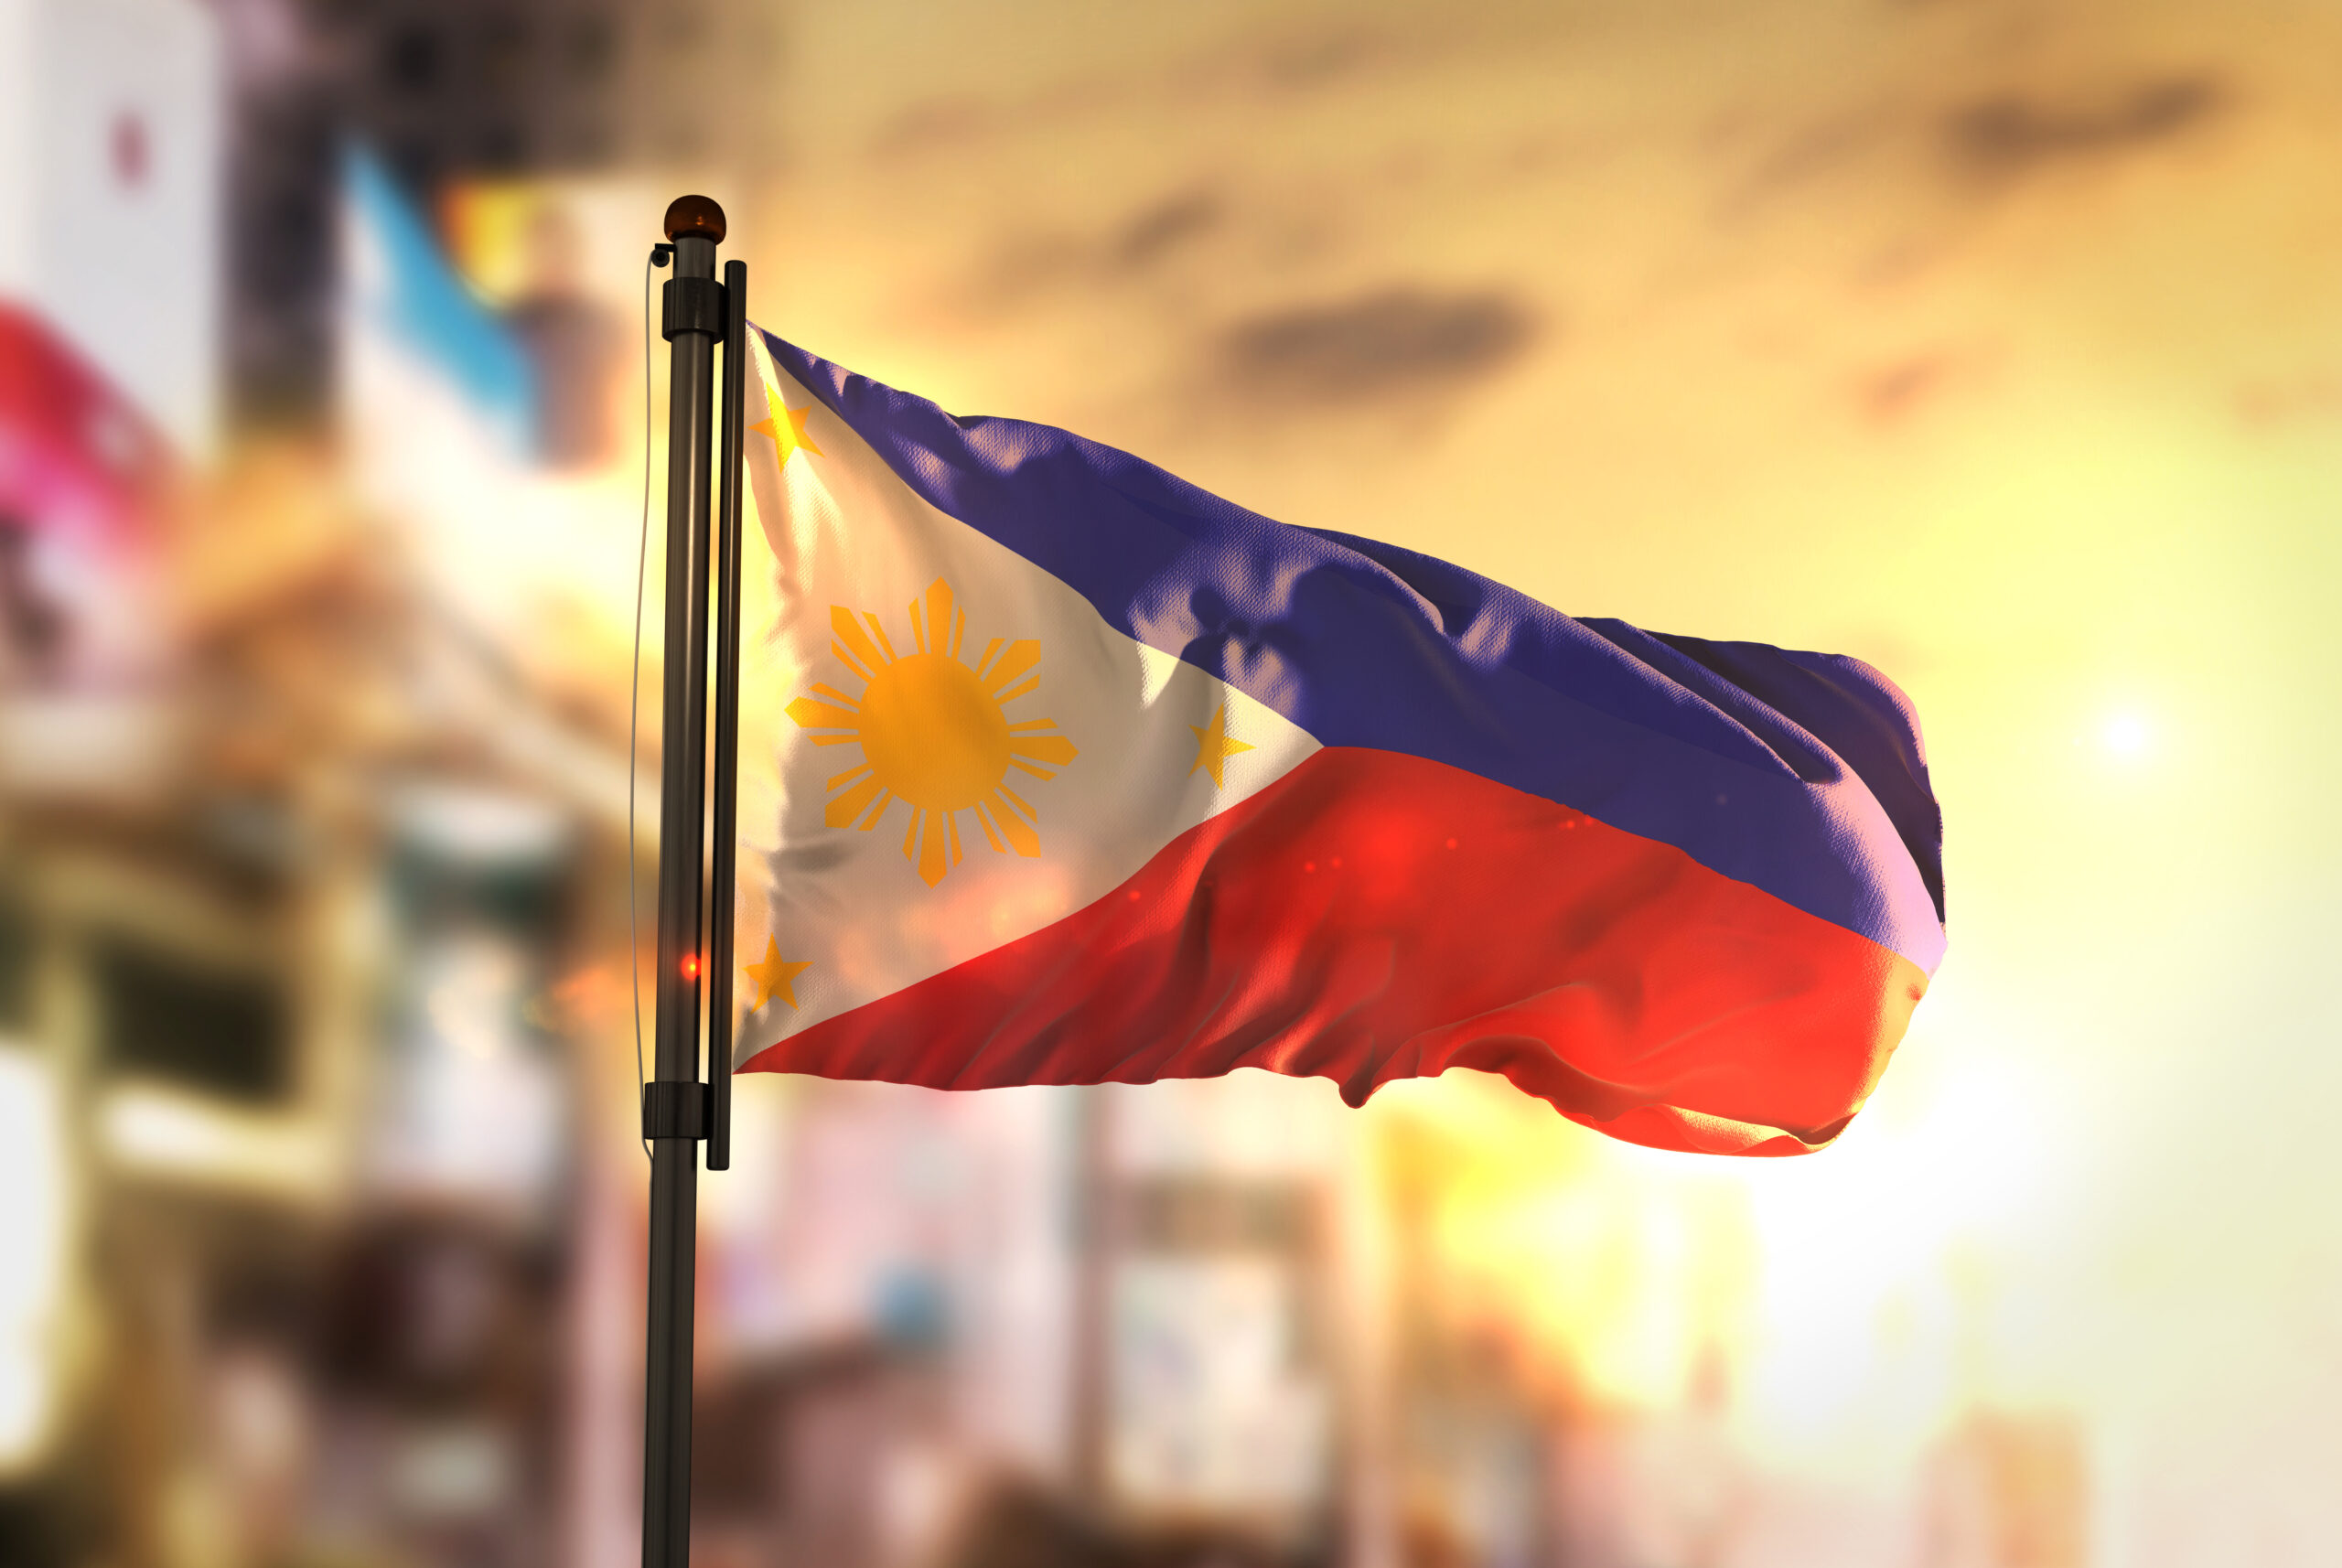 Fun Quiz about the flag of the Philippines